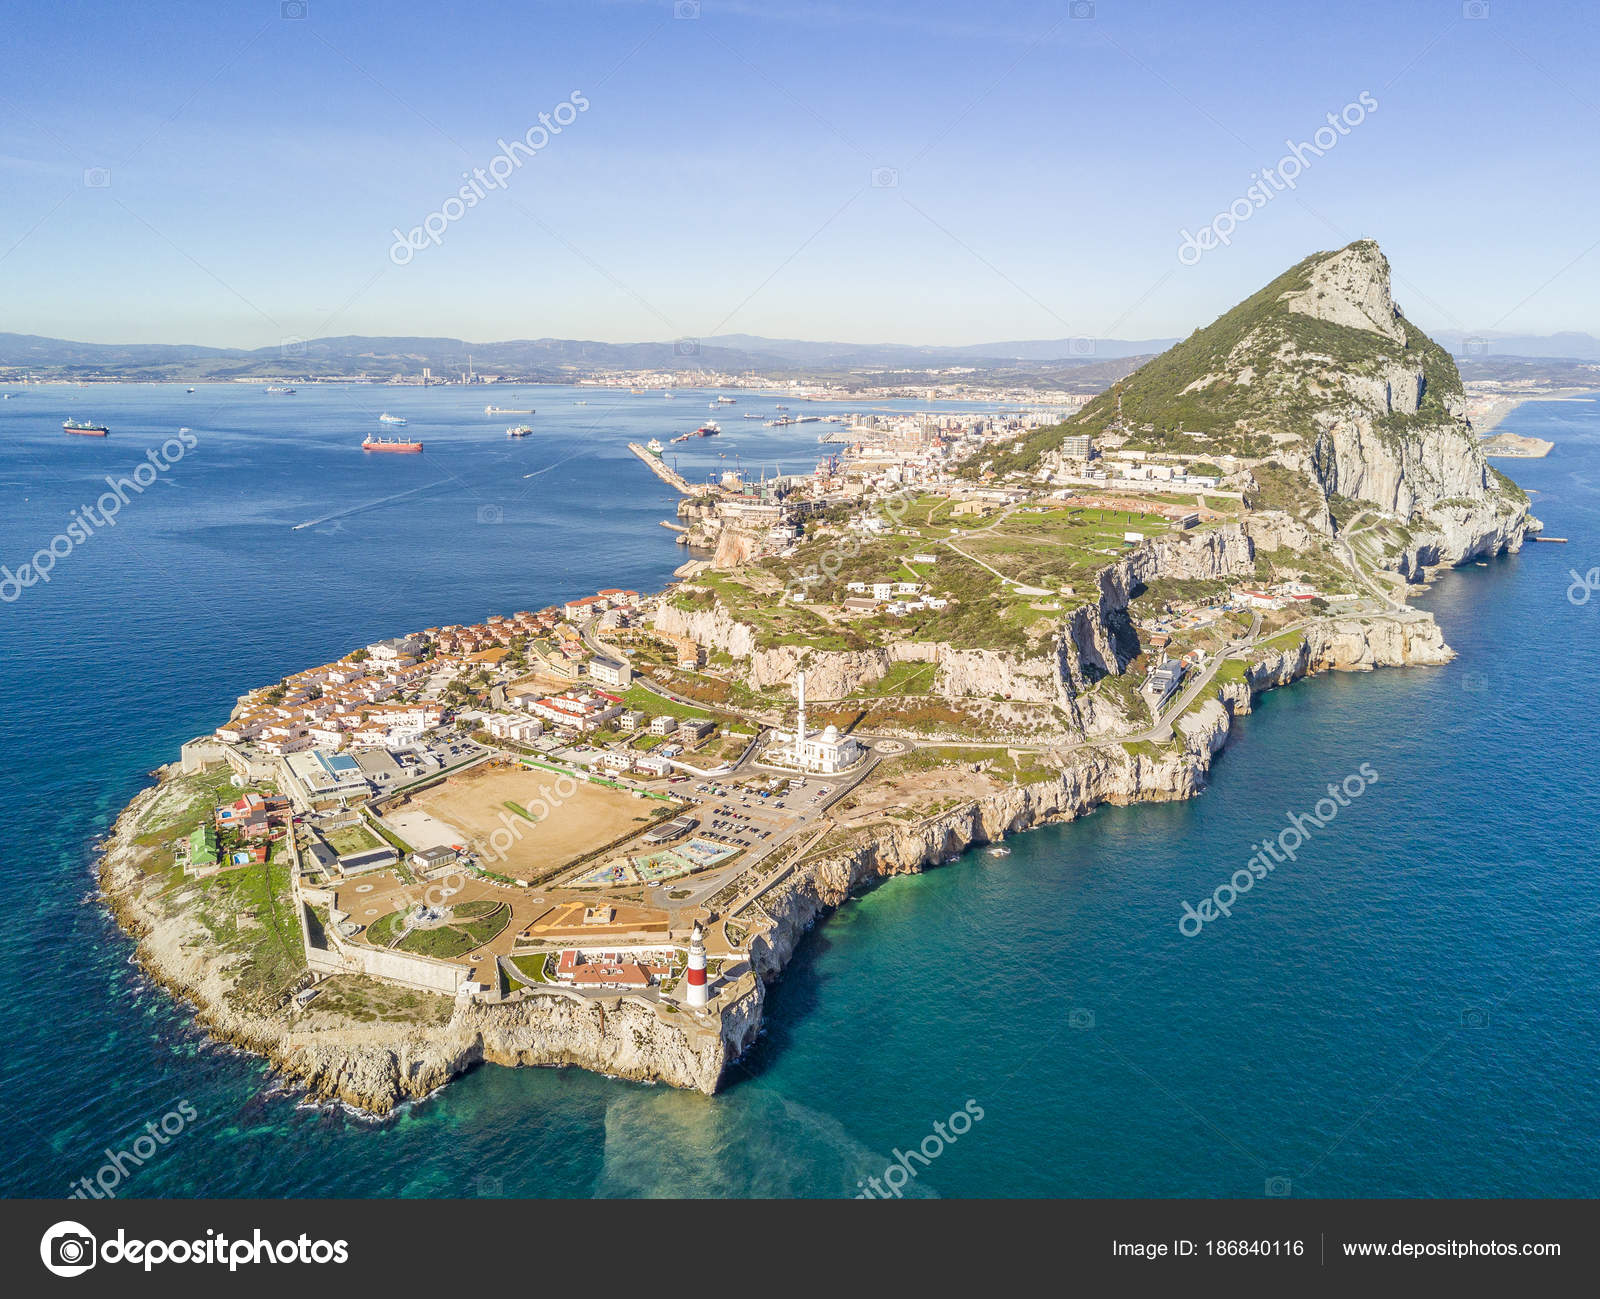 famous gibraltar rock on overseas british territory iberian pen